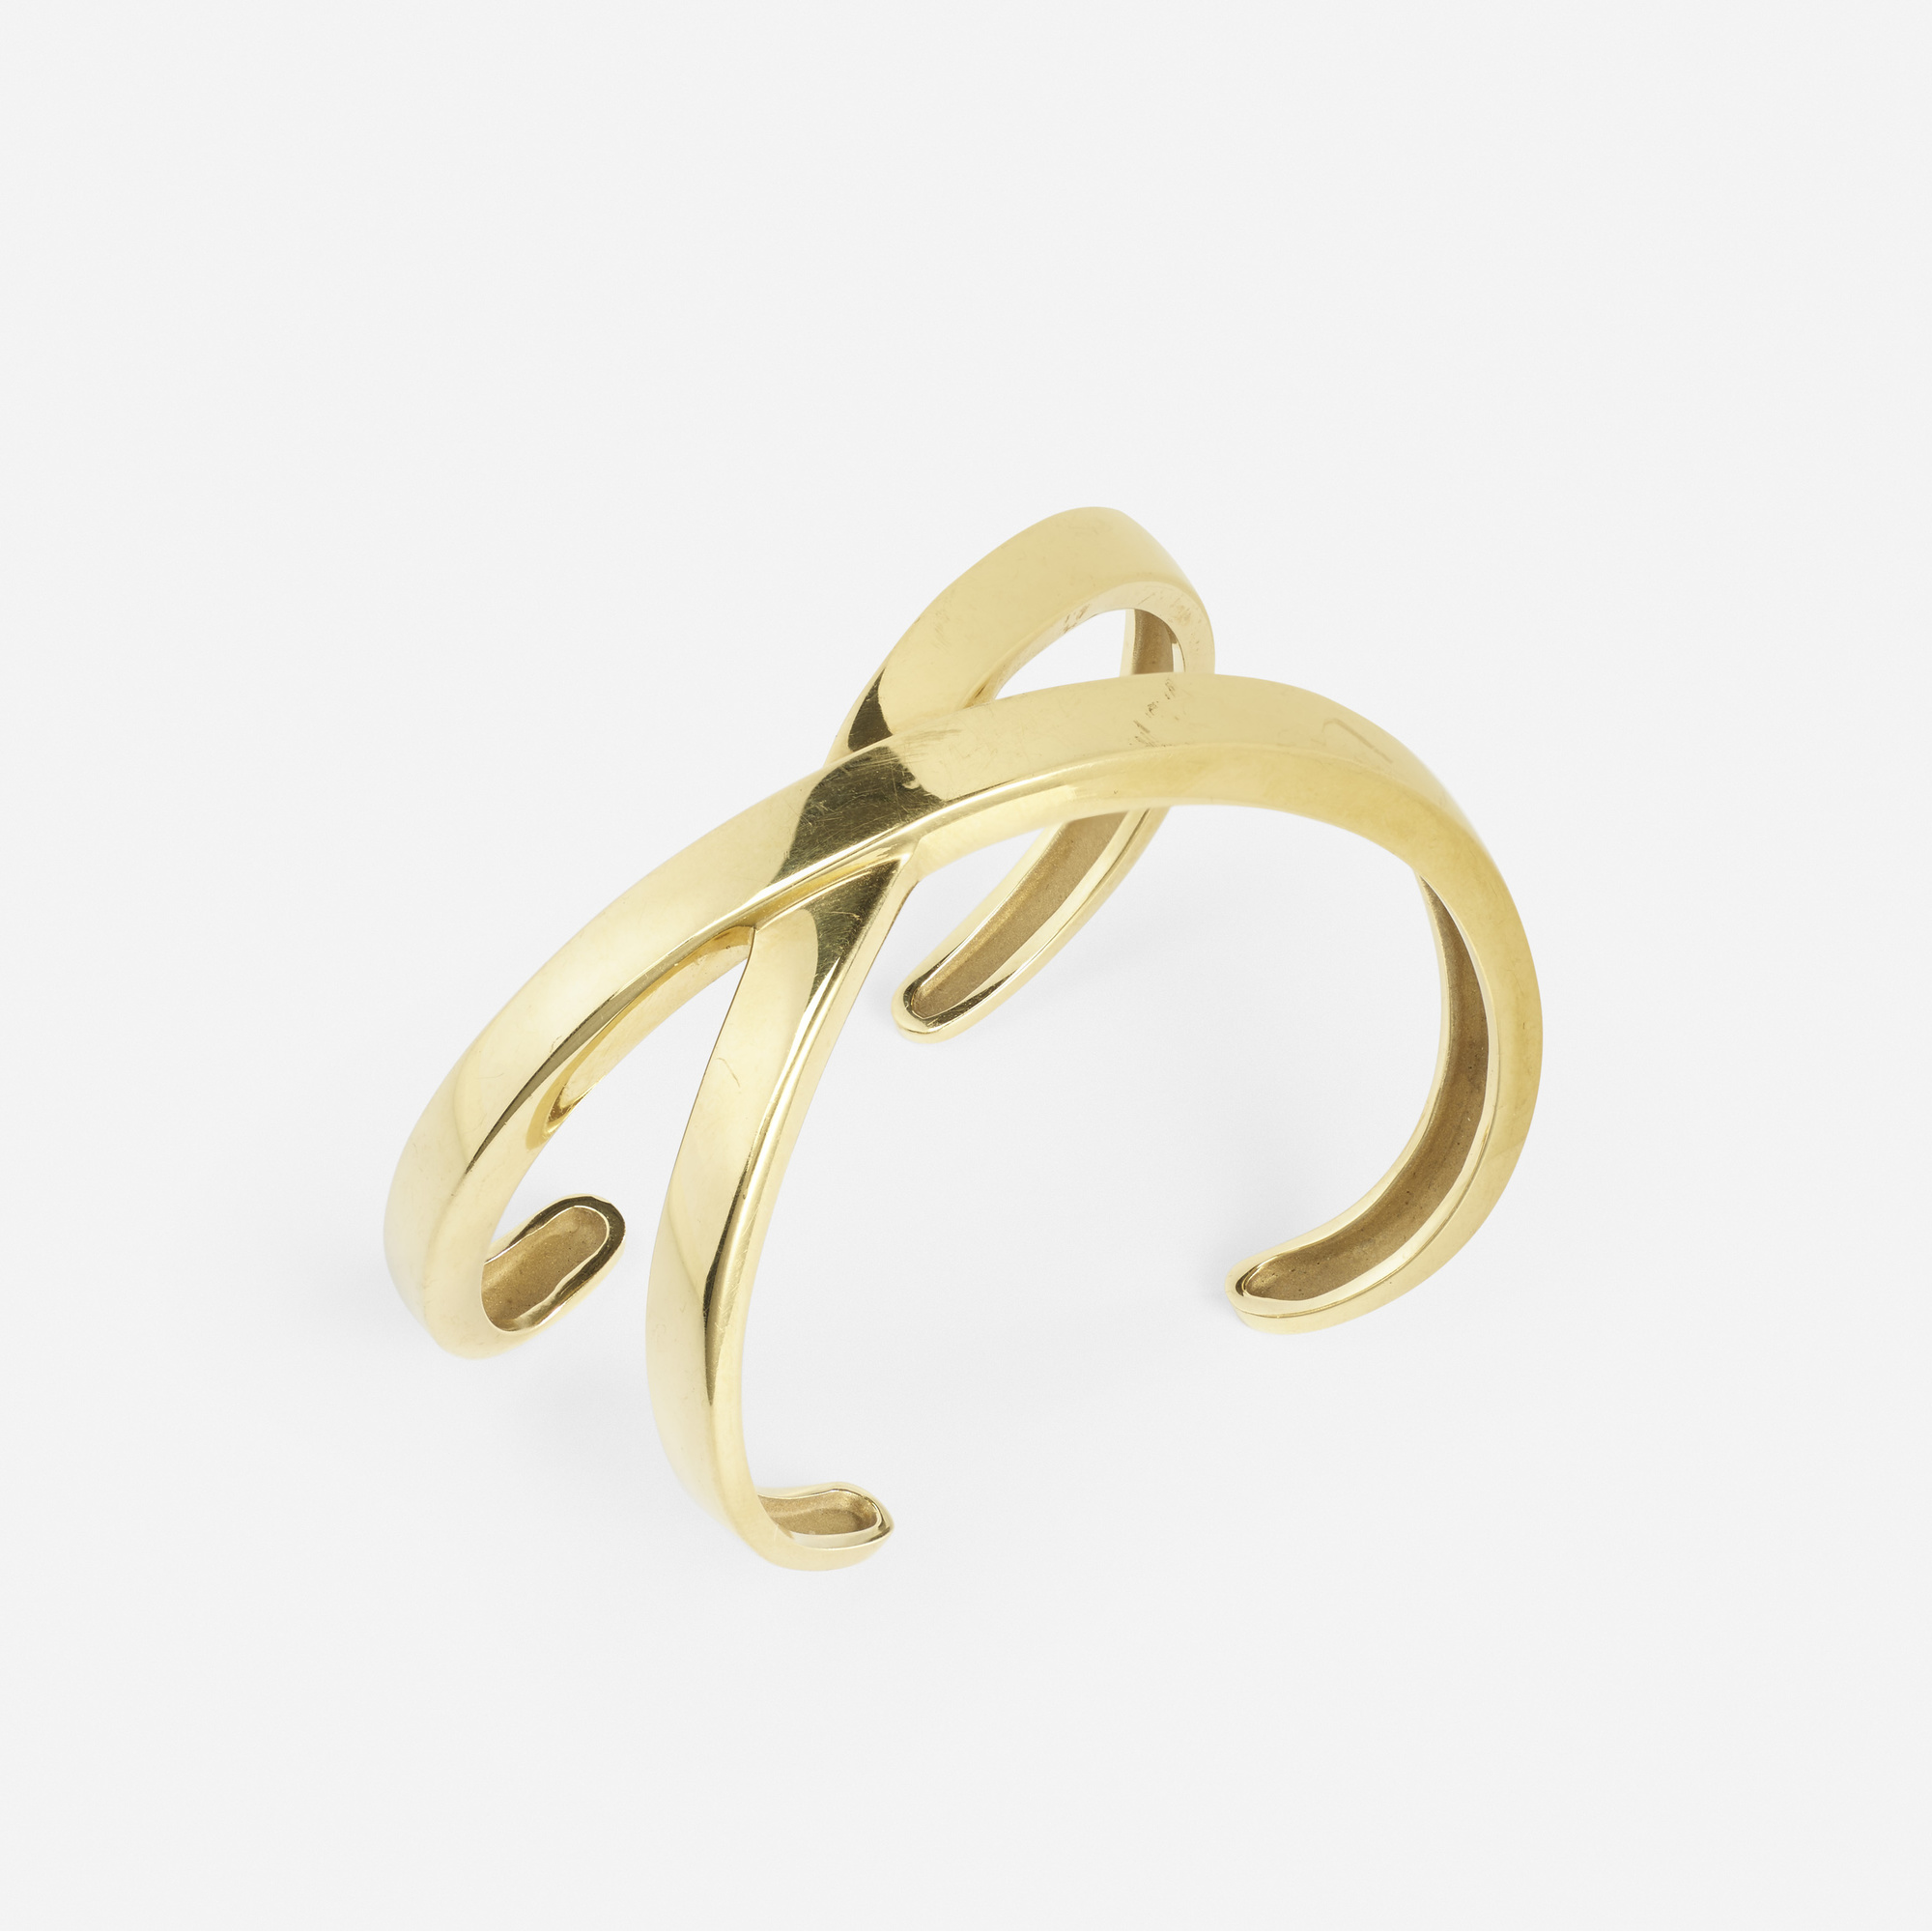 265: Paloma Picasso for Tiffany & Co. / A gold bangle from the X Collection (1 of 2)